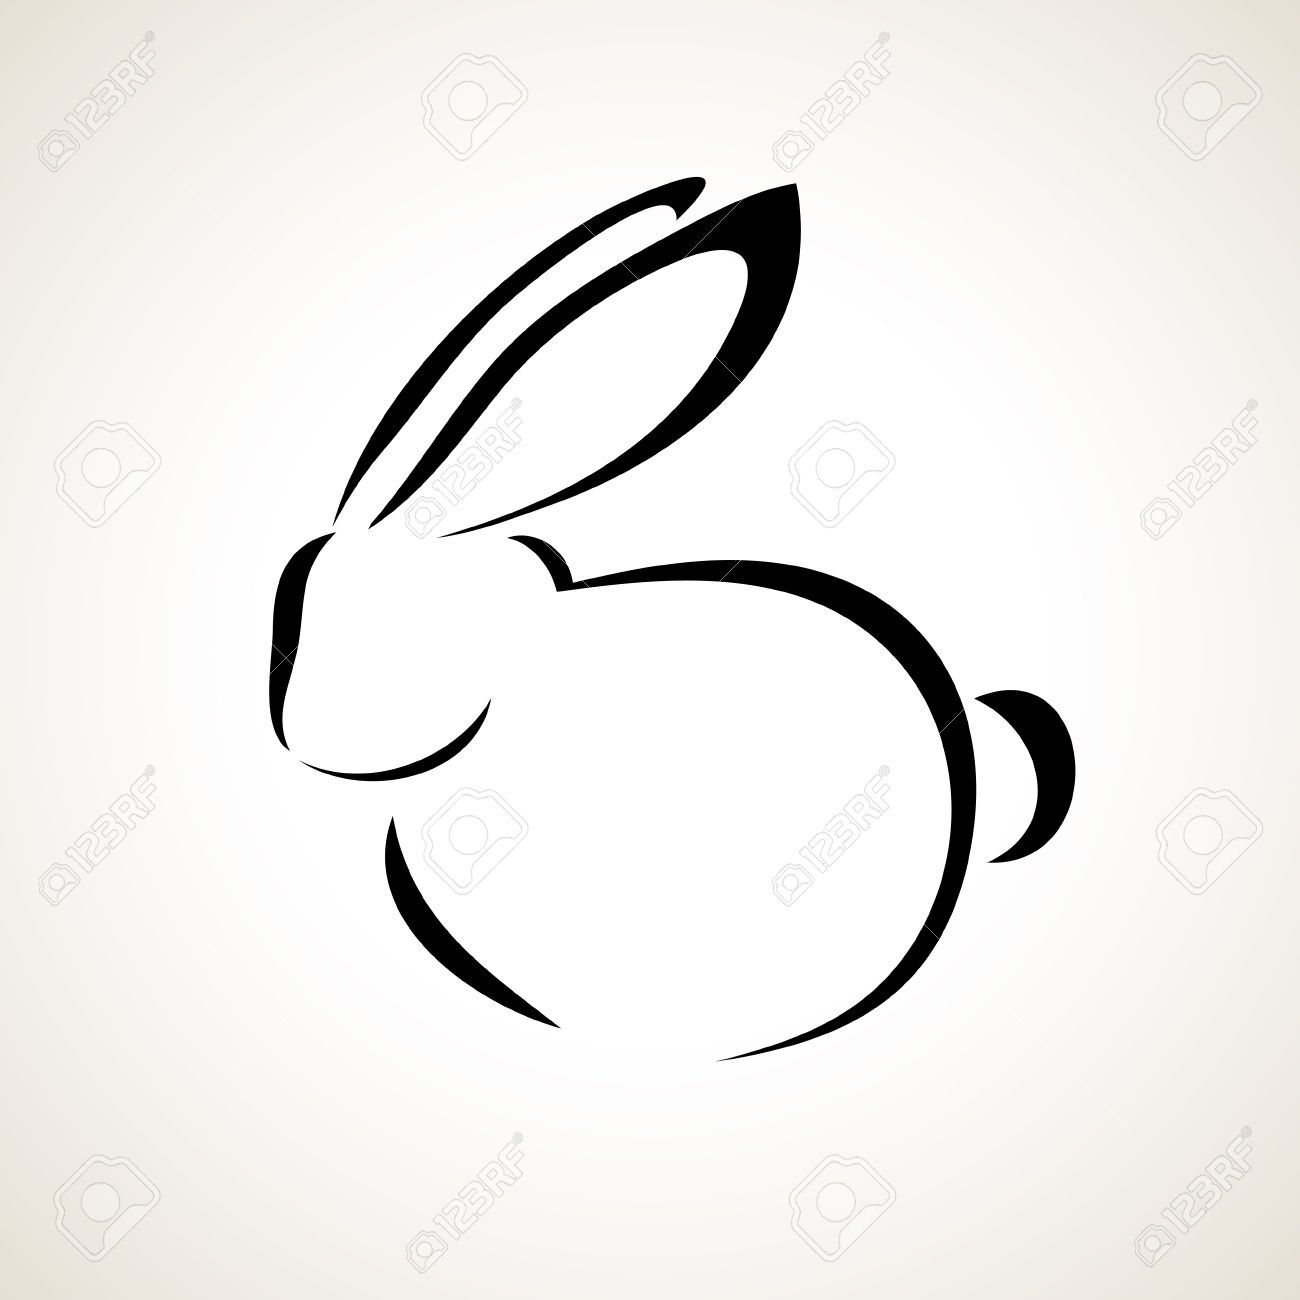 rabbit outline drawing - Google Search … | bunnies | Outli… vector library